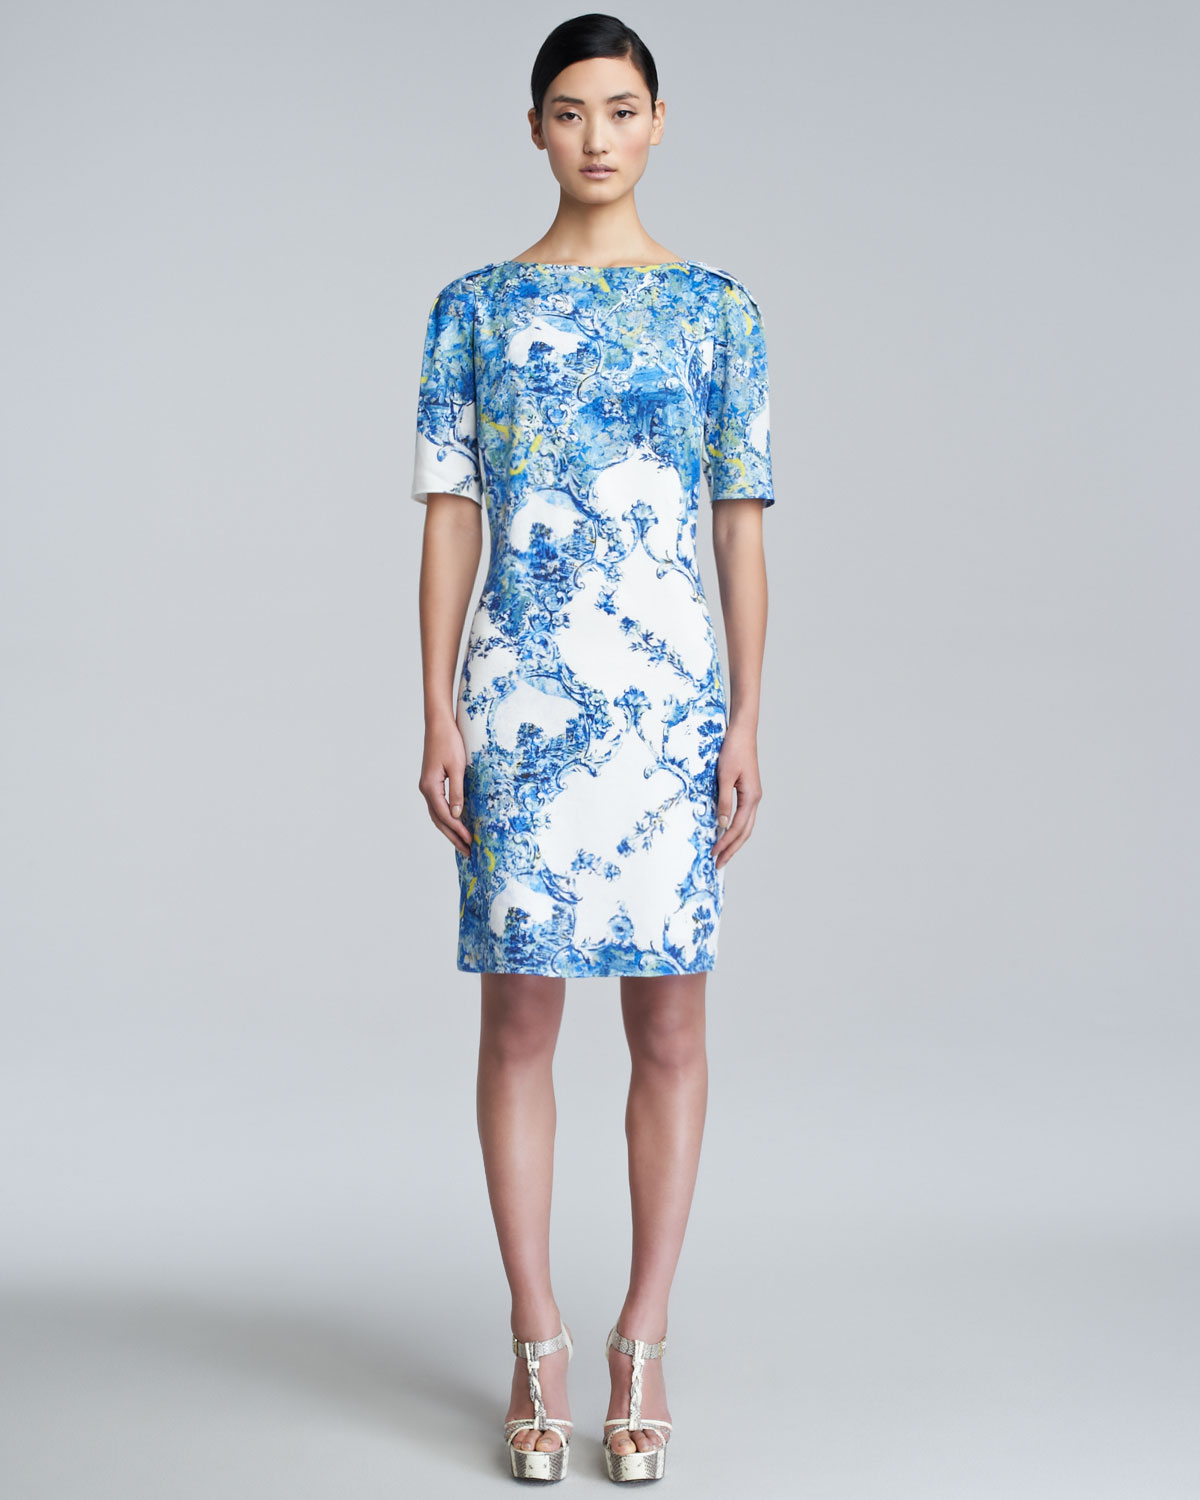 Redoubtable Erdem Blouse | Cute Erdem Dress